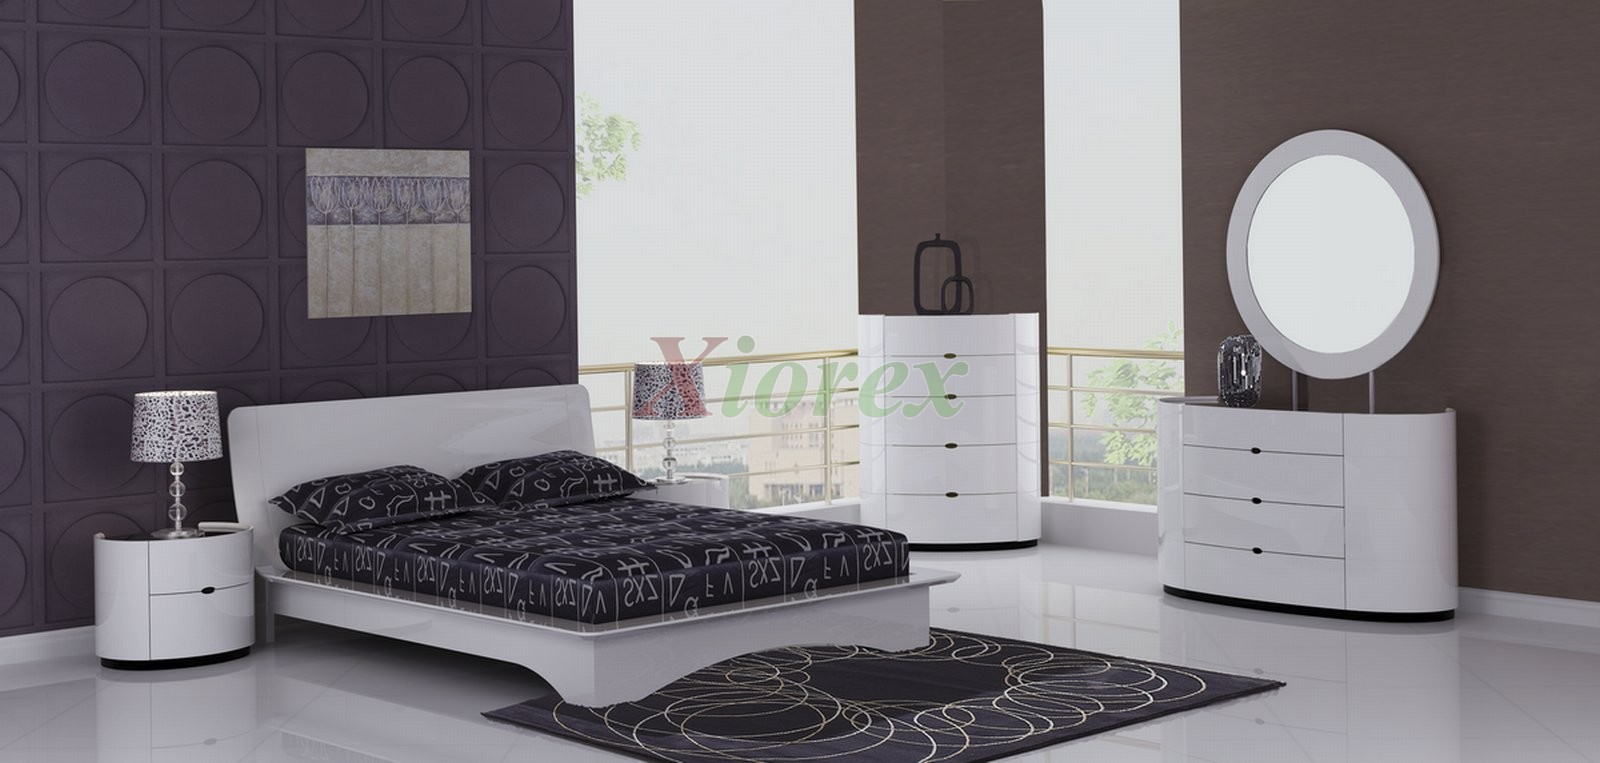 Awesome Eri All White Bedroom Collections Are Modern Bed Sets With Platform Beds,  Stylish Concave Headboards, And Beautifully Designed Deep Rounded Corners  On The ... Home Design Ideas